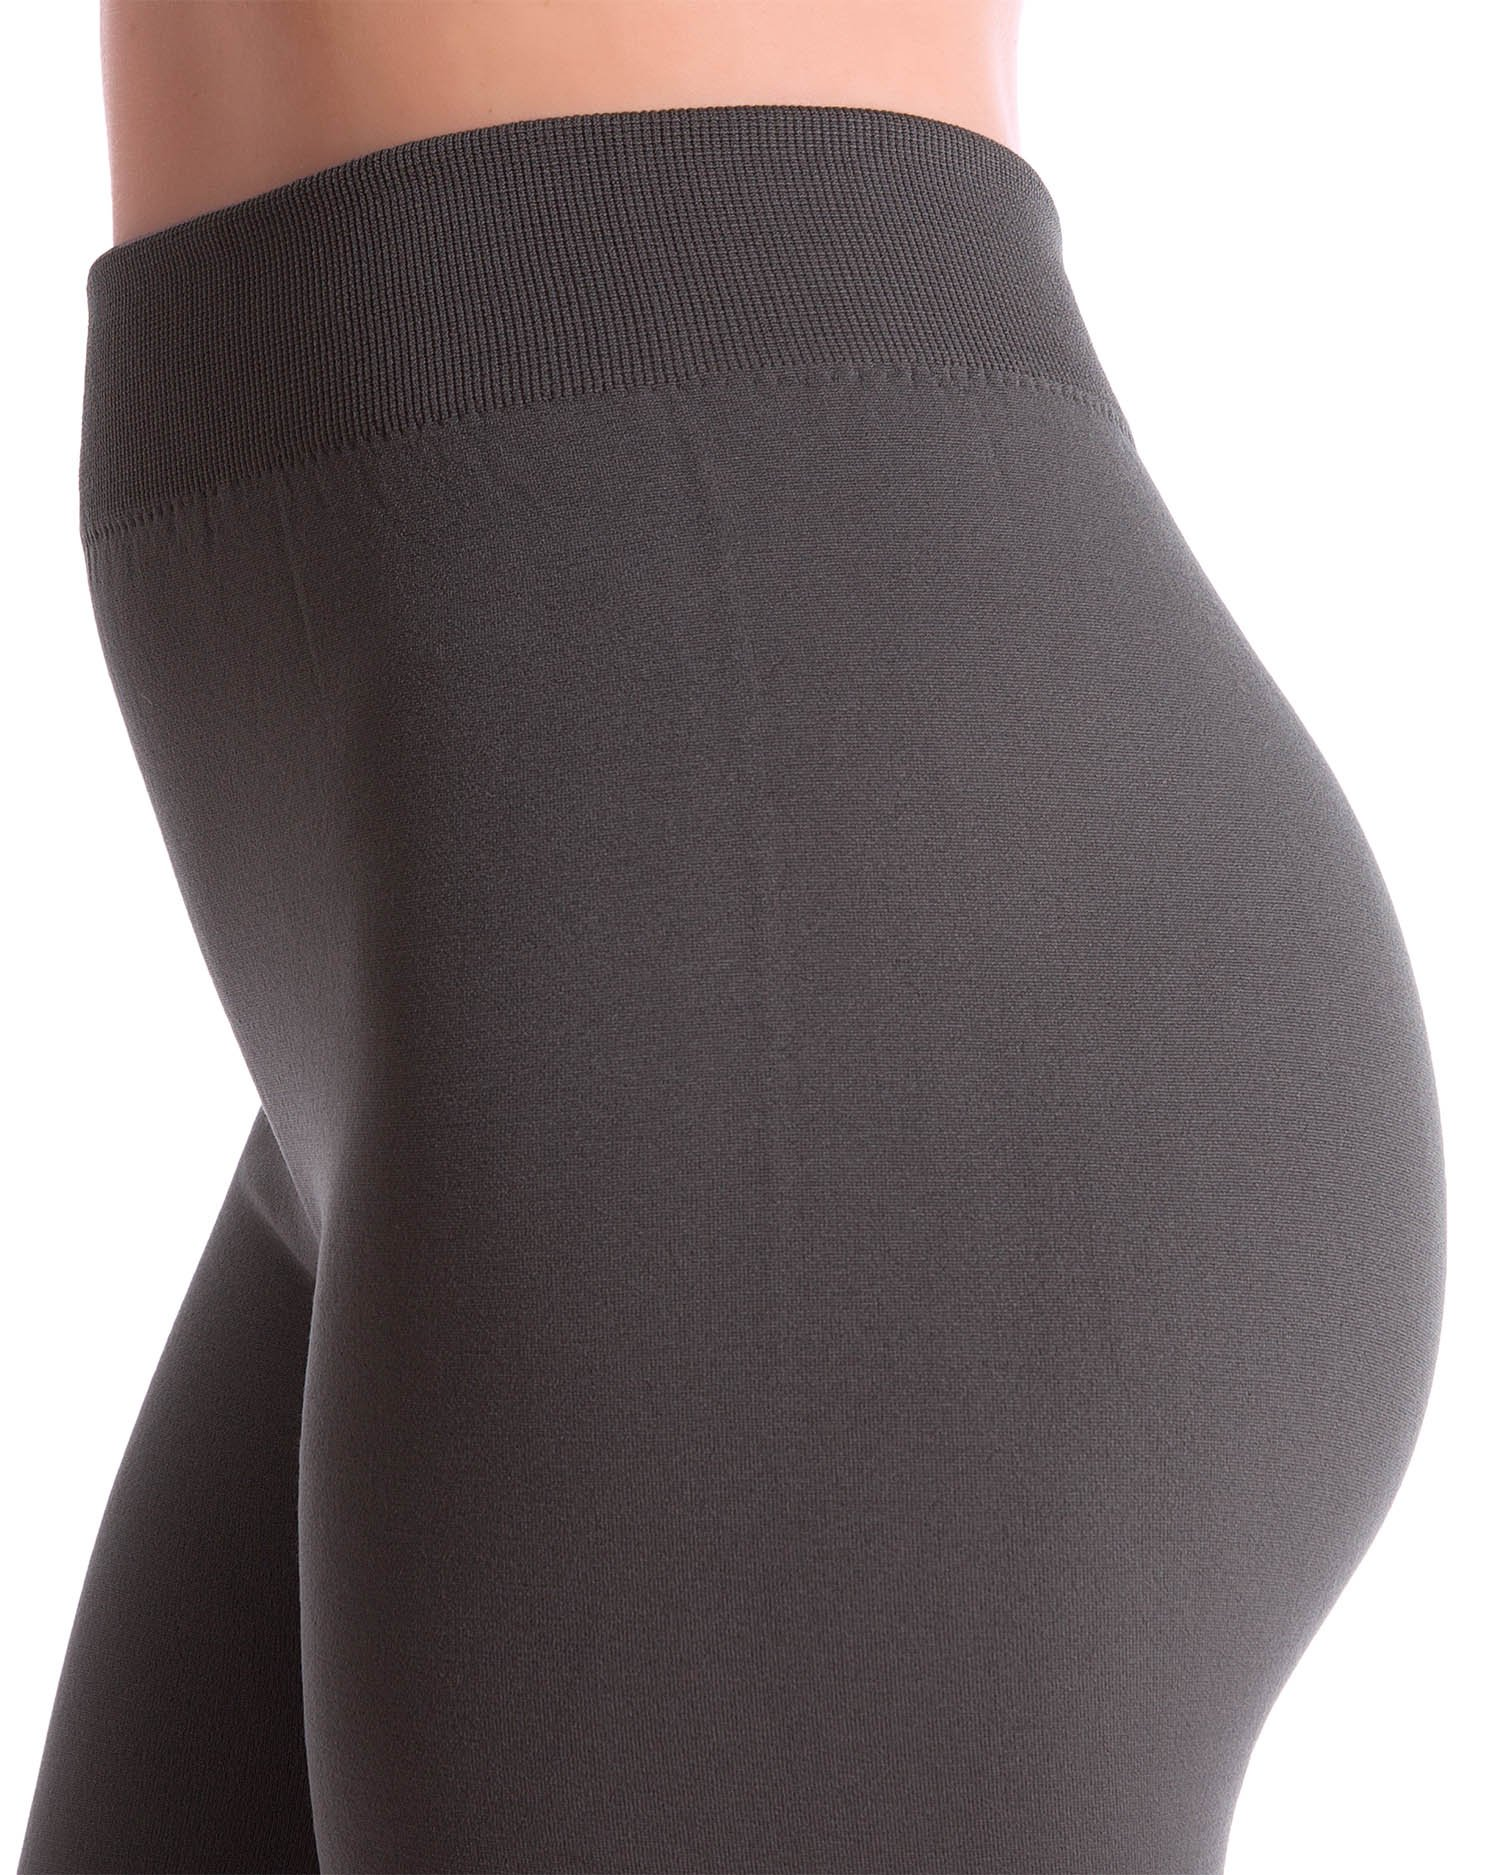 3-Pack Fleece Lined Thick Brushed Leggings by Homma (S/M/L, BLACK/NAVY/GREY) by Homma (Image #4)